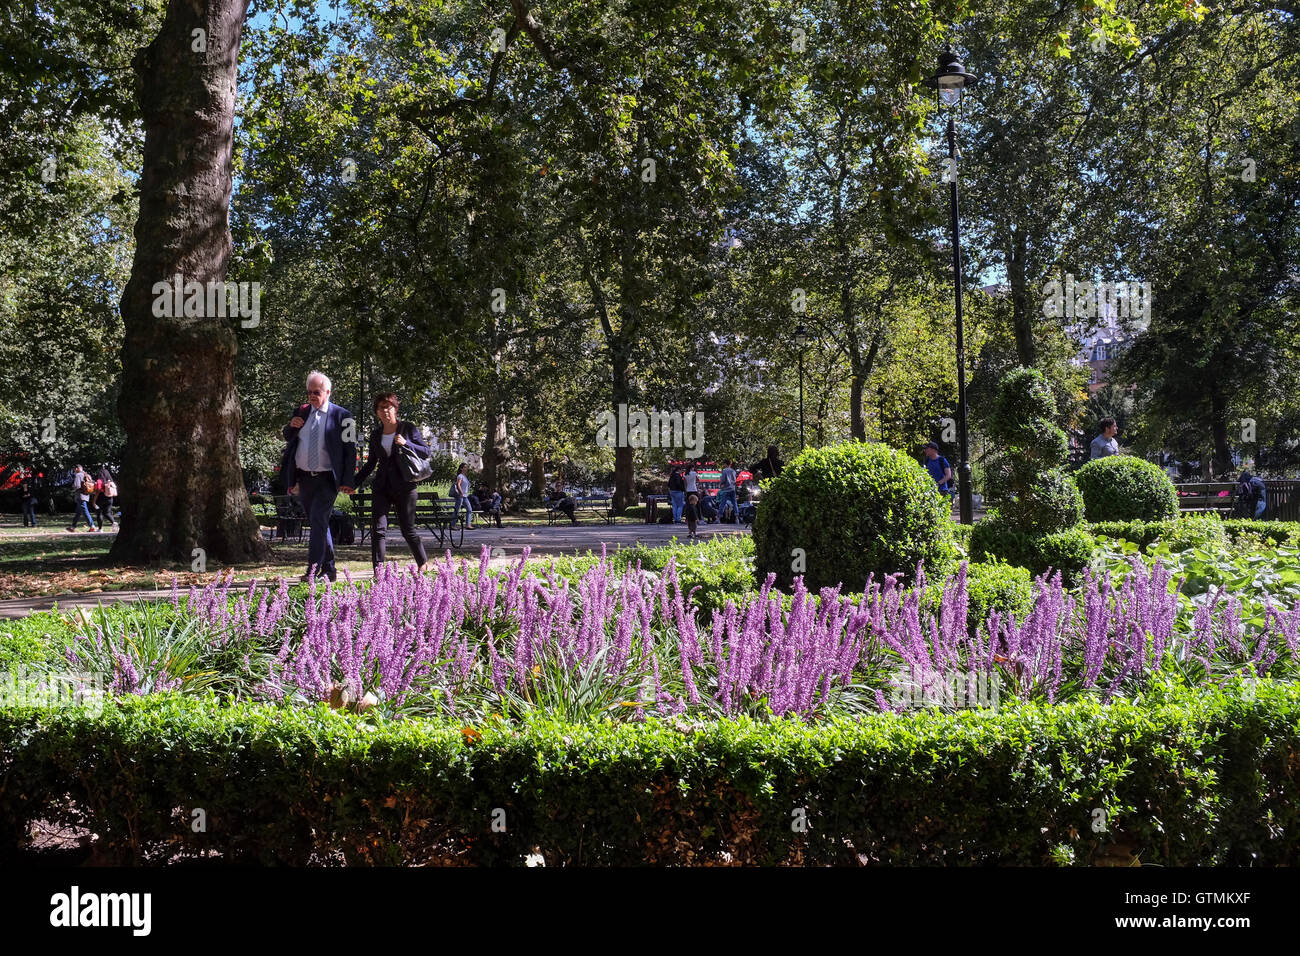 Russell Square, Bloomsbury, London - Stock Image